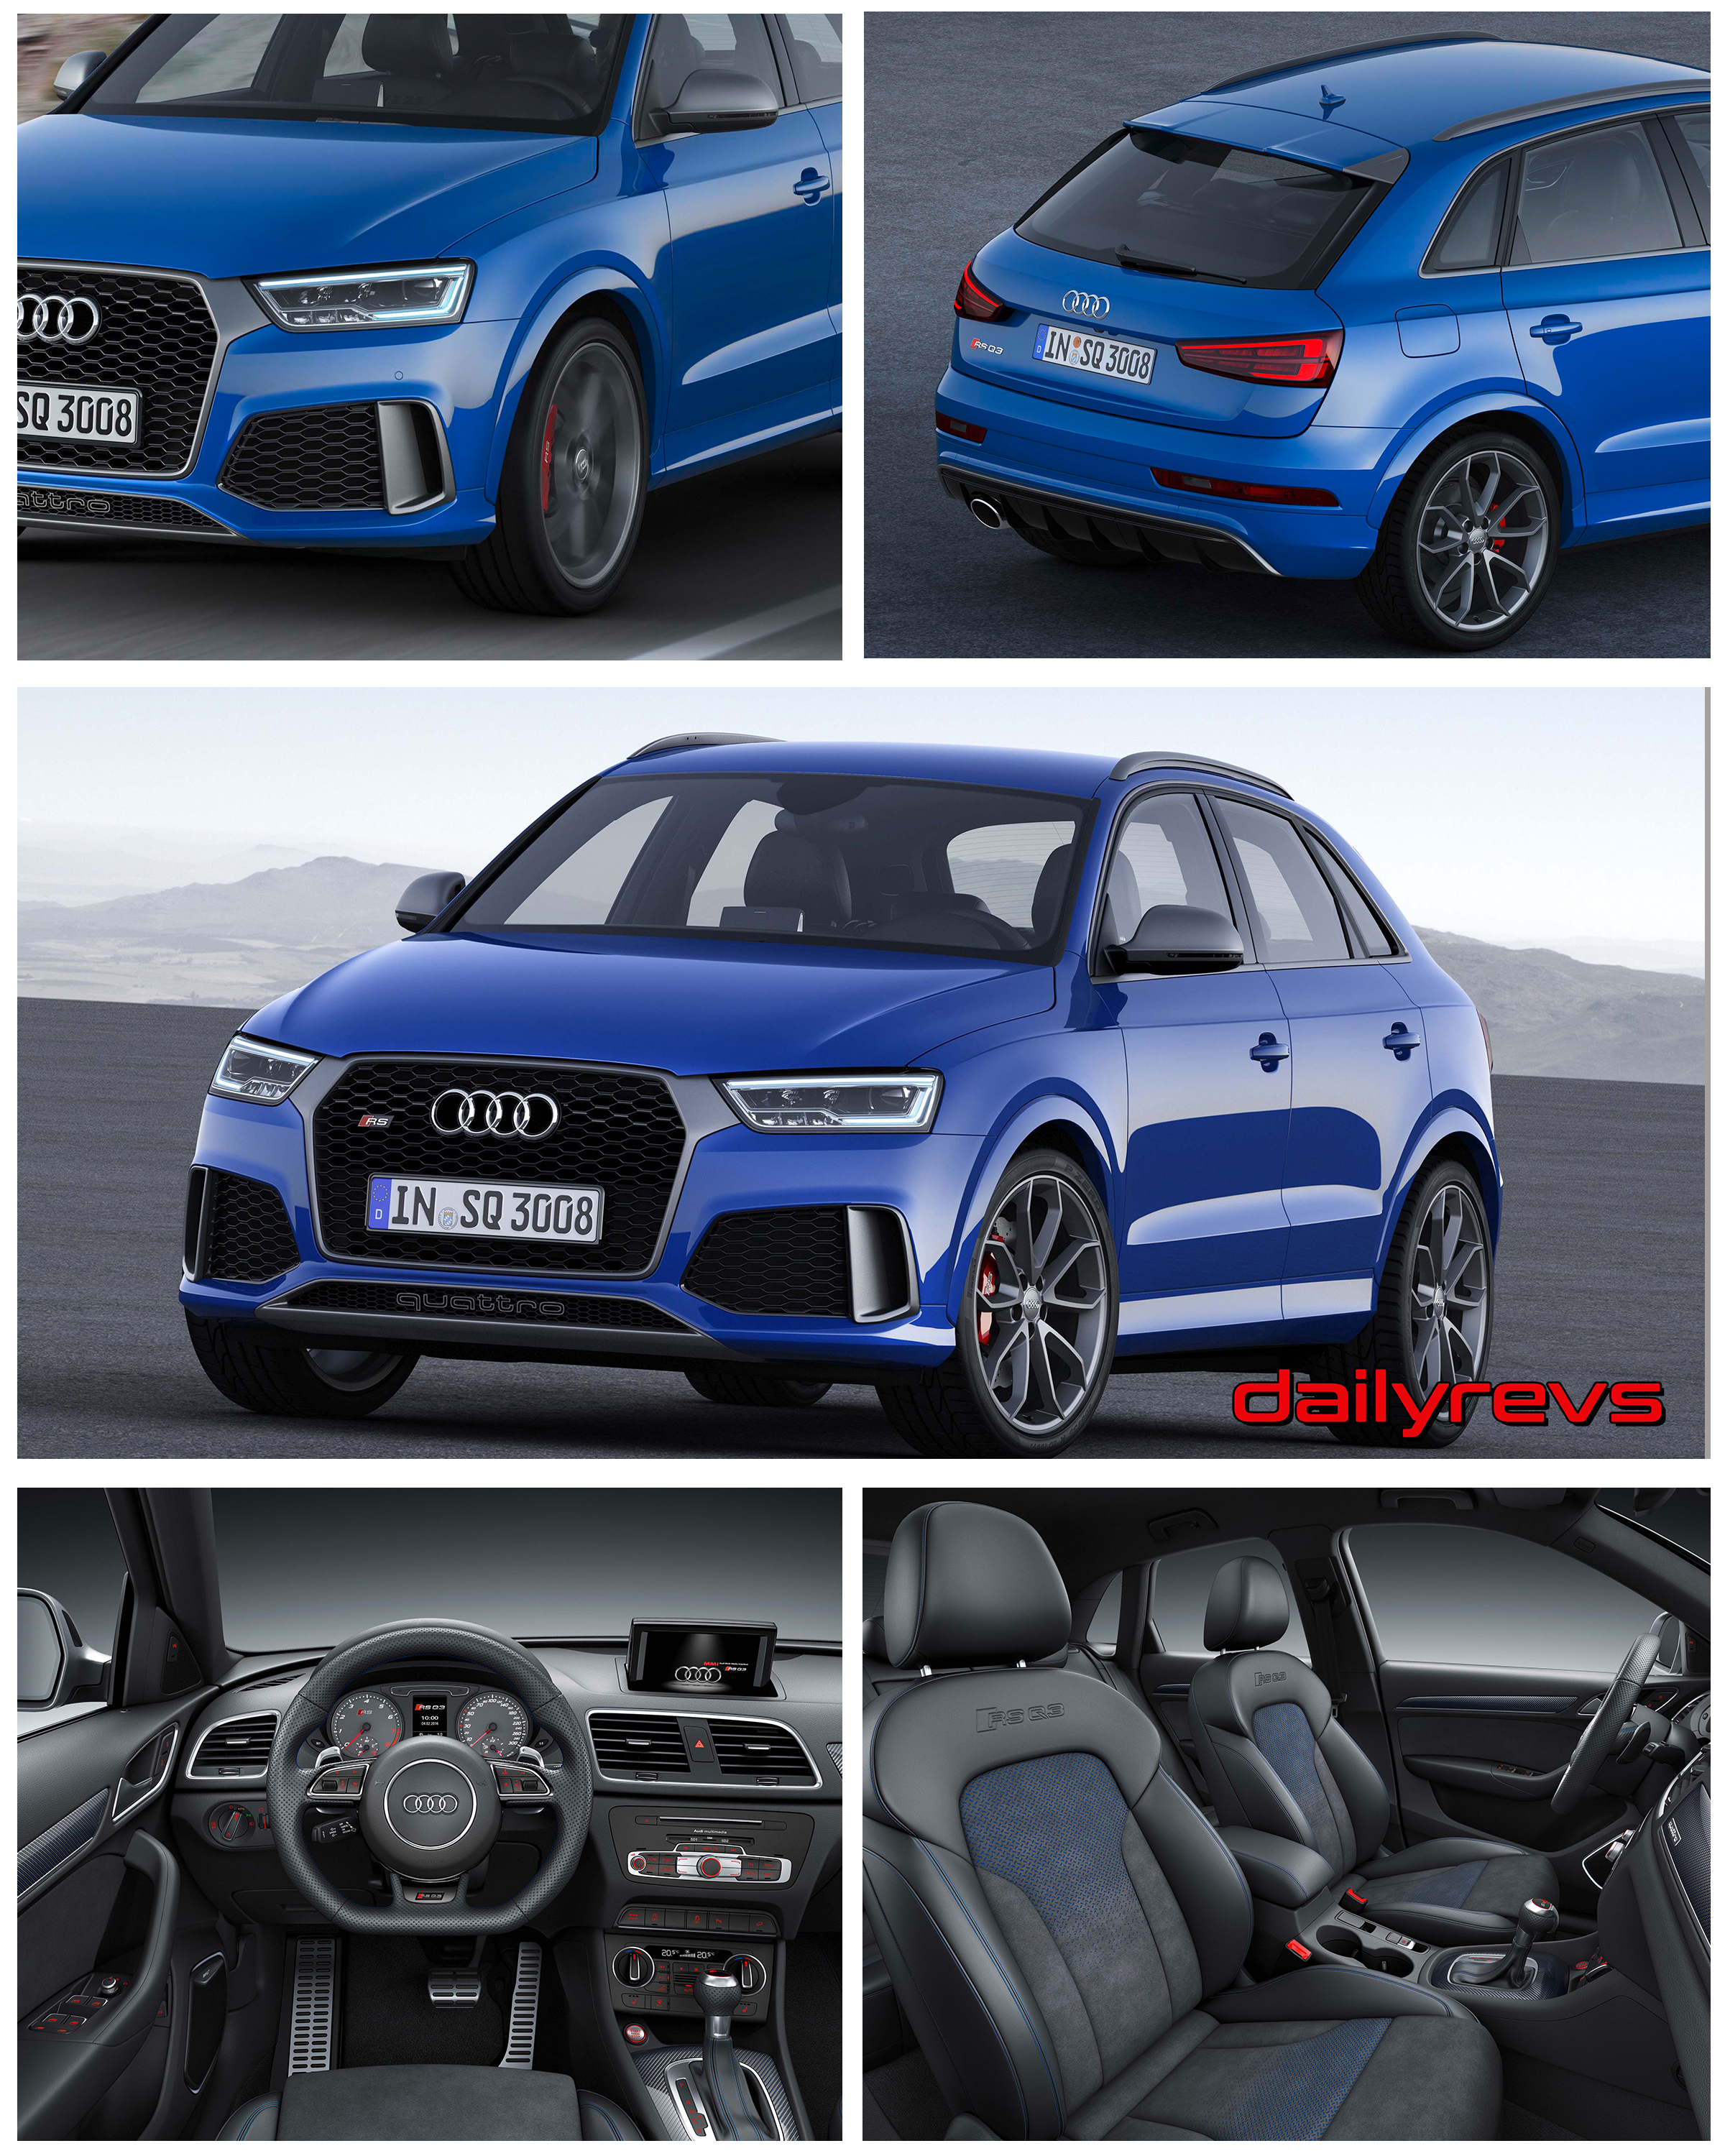 2017 Audi Rs Q3 Performance Hd Pictures Videos Specs Informations Dailyrevs